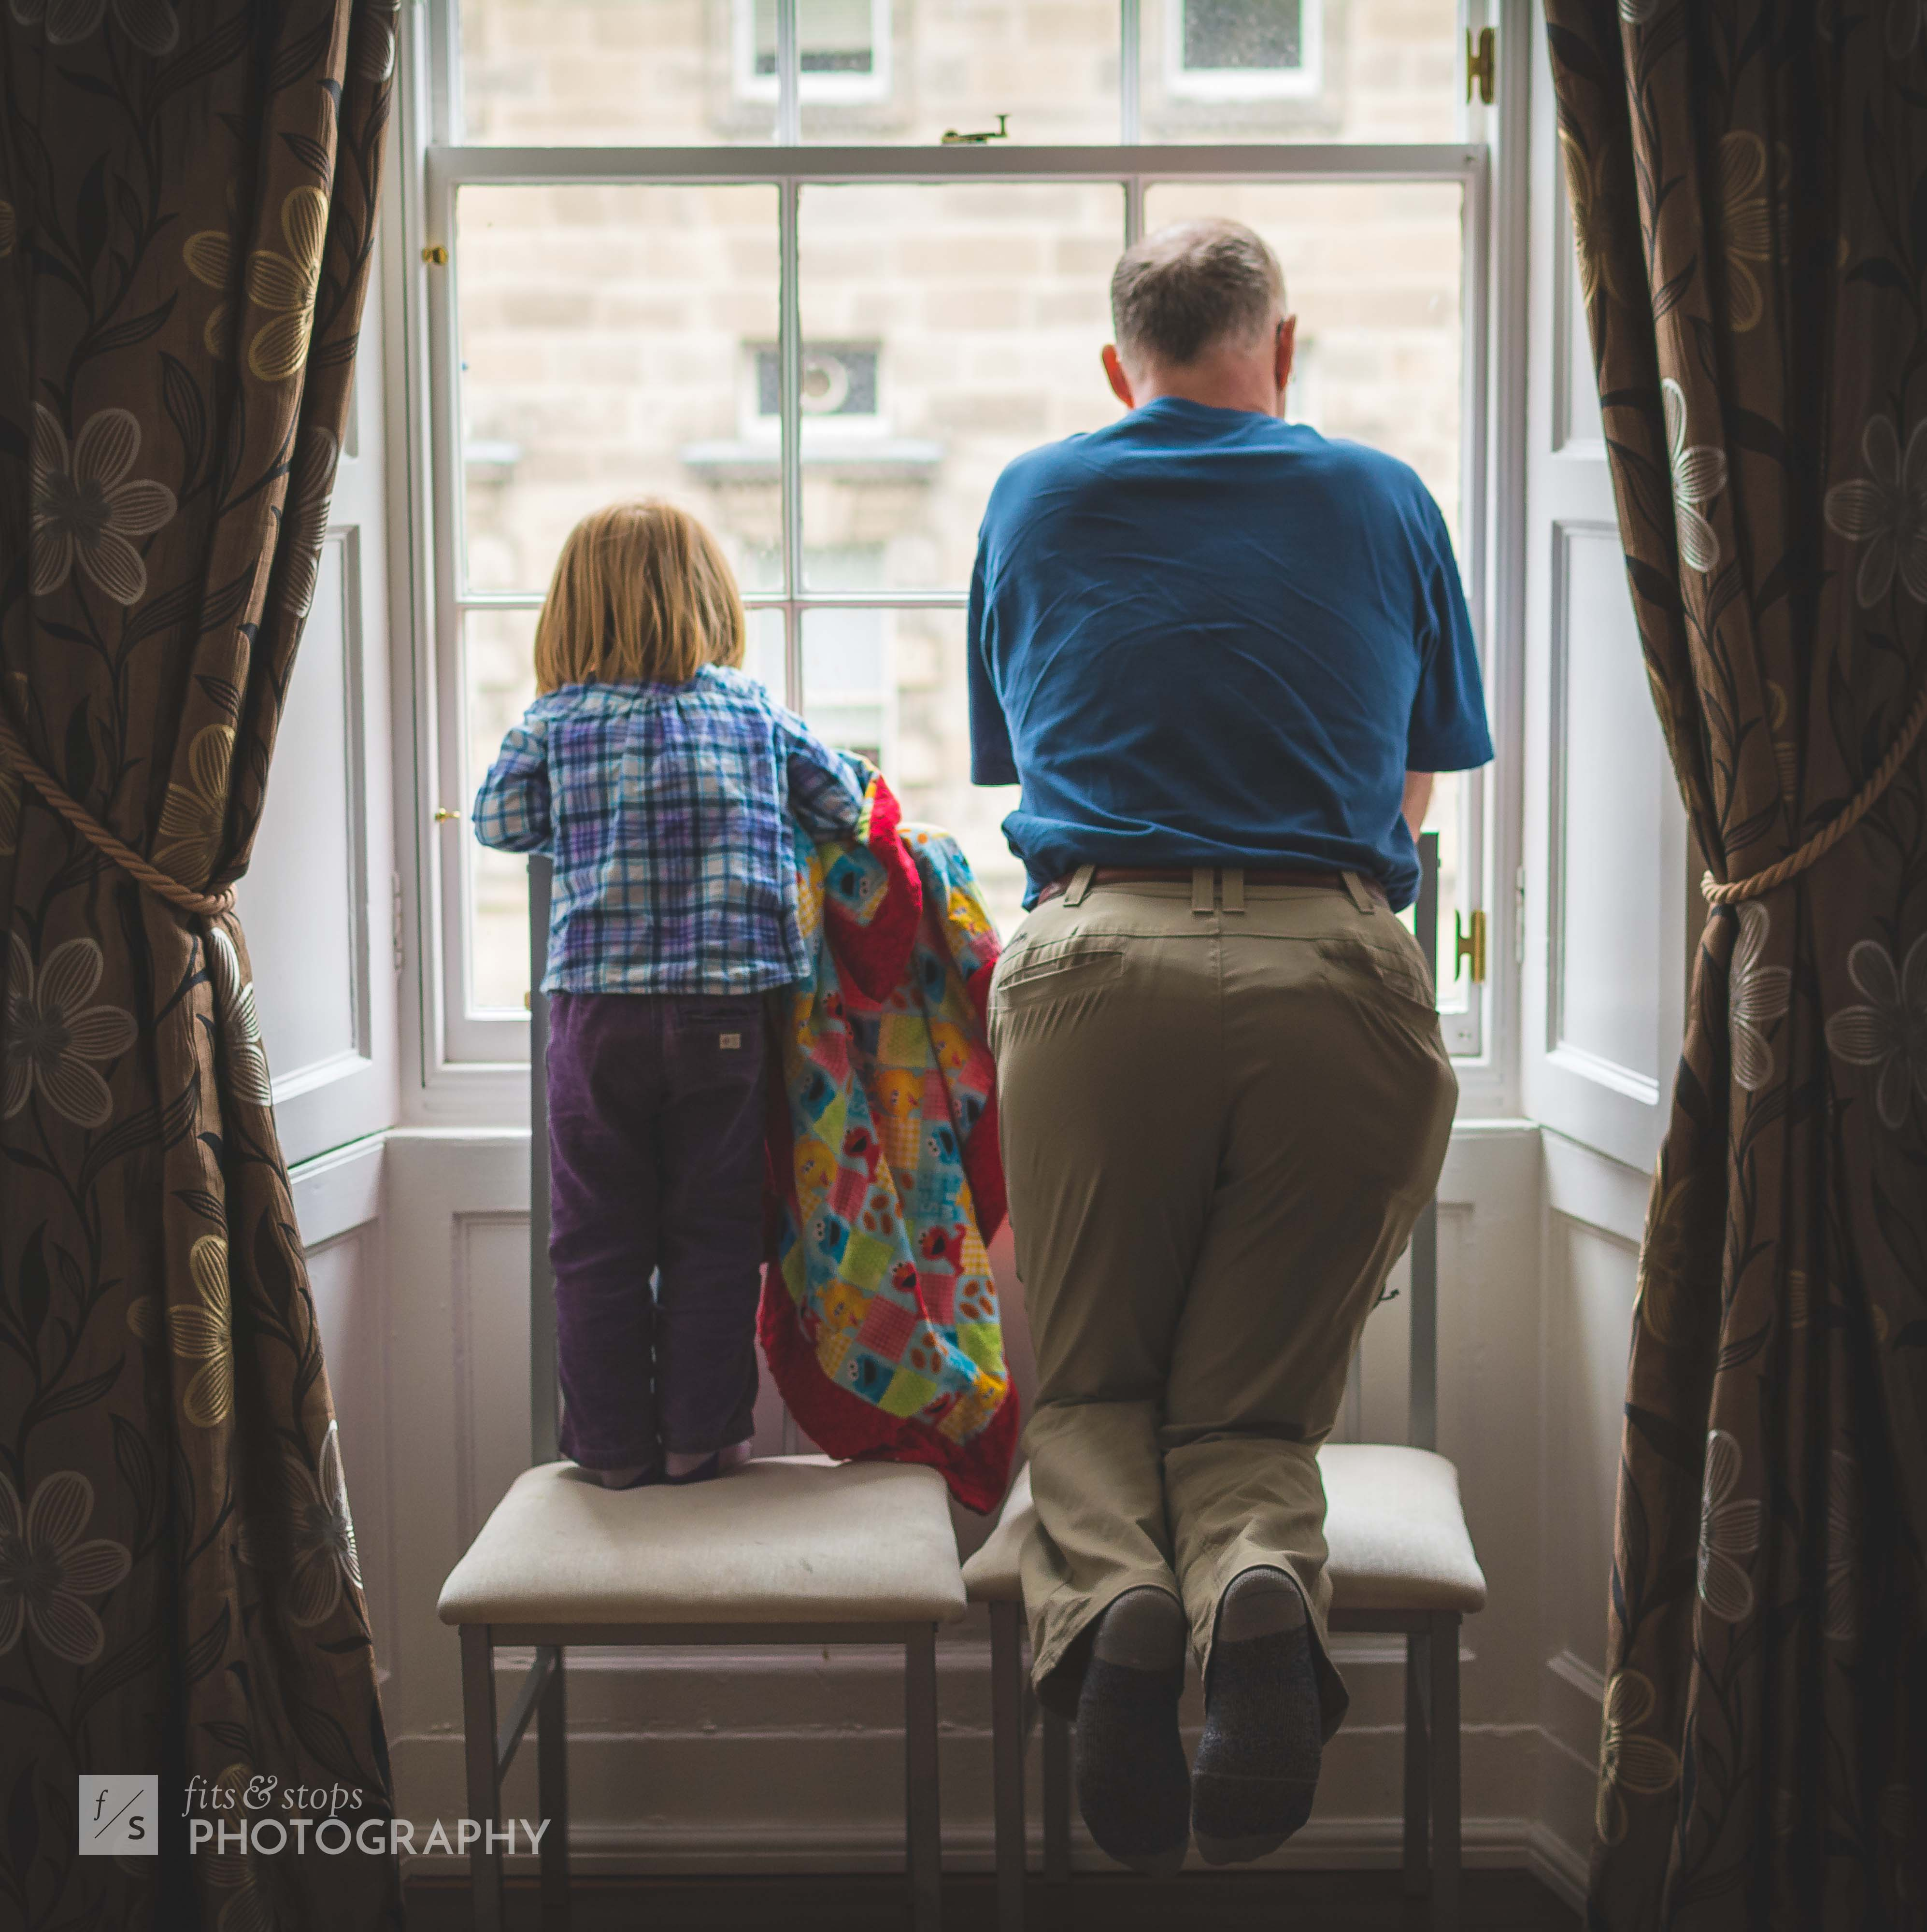 A little girl and her grandfather peer out a second-story window down to Edinburgh's Royal Mile,